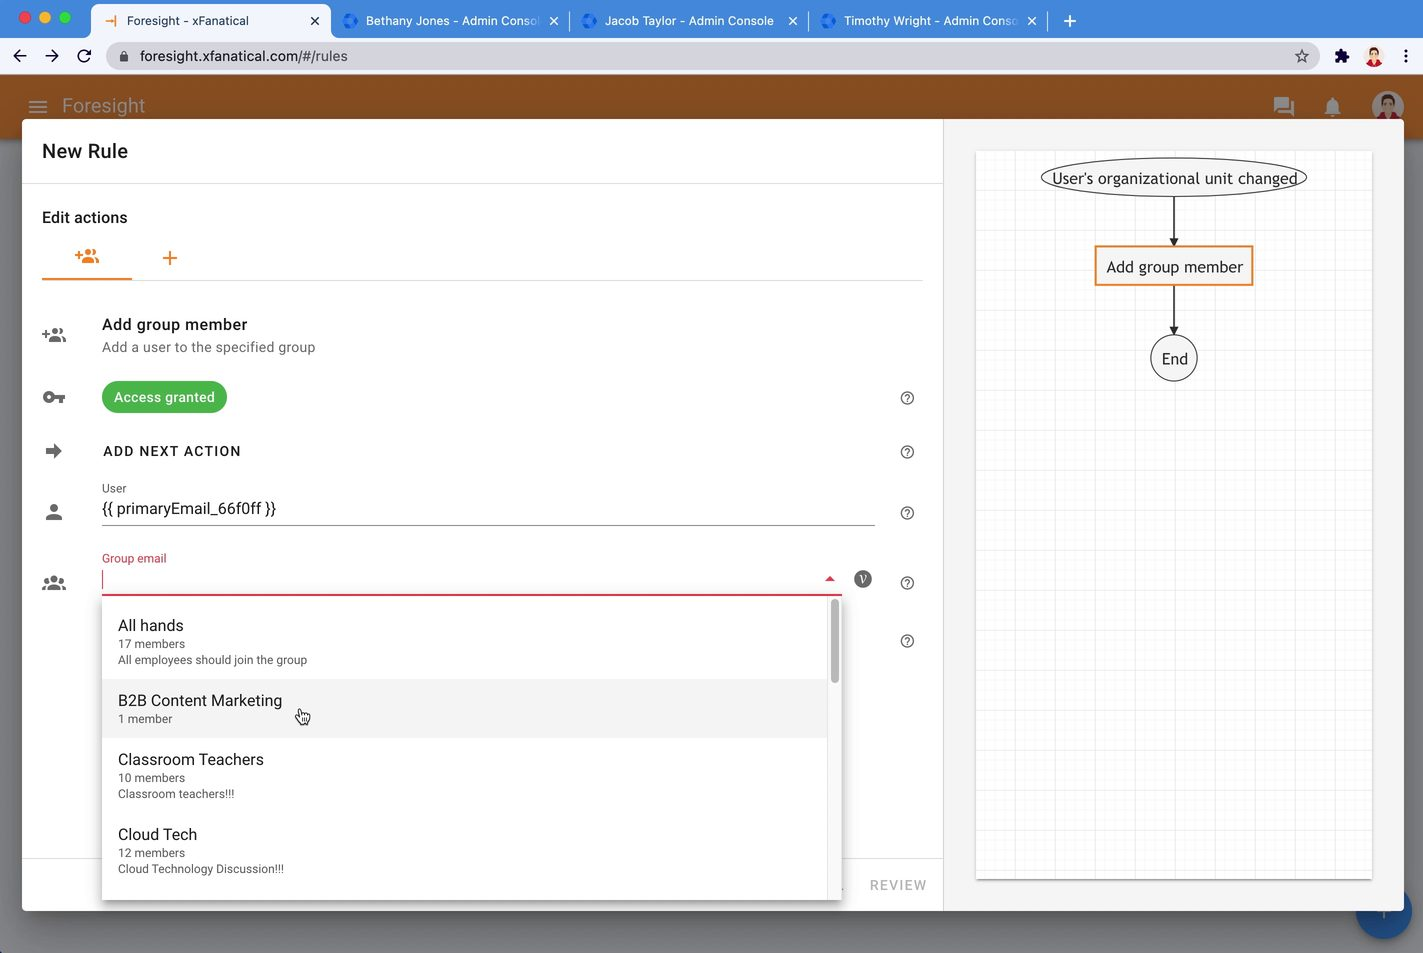 Configure Add group member action in Foresight